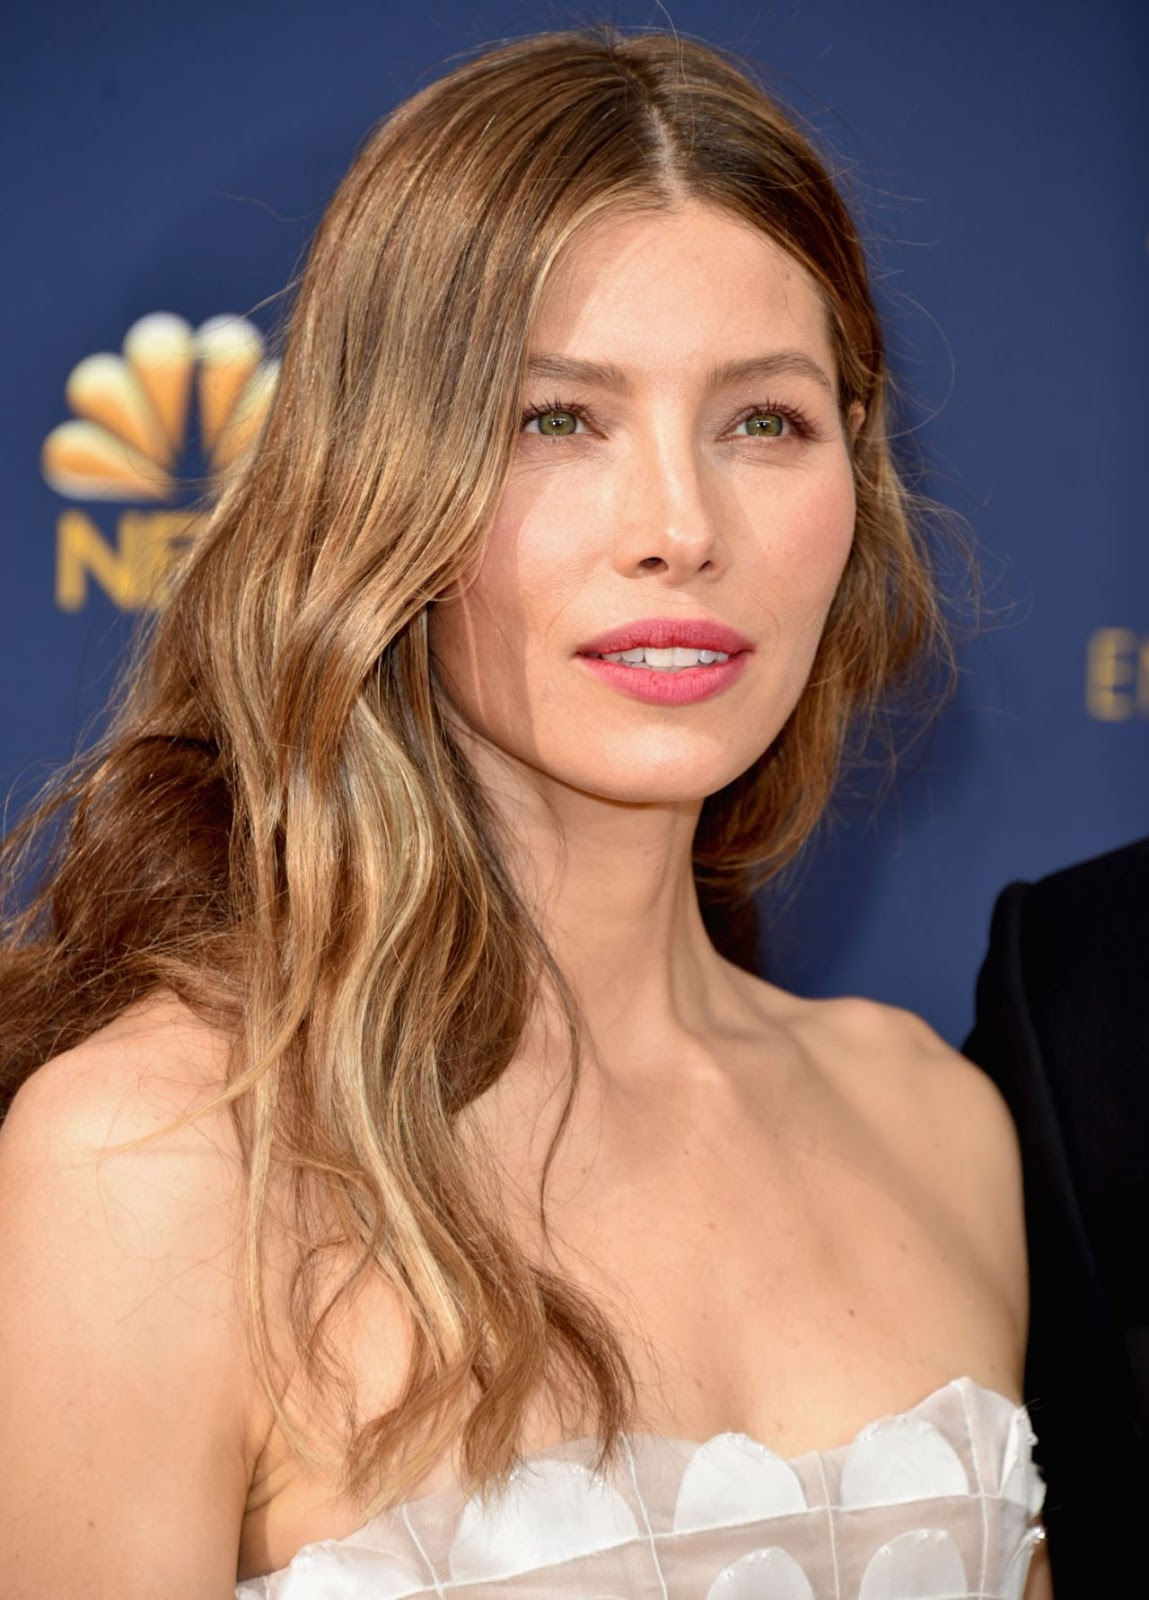 Jessica Biel goes strapless in Ralph Lauren at the 2018 Emmys Jessica Biel